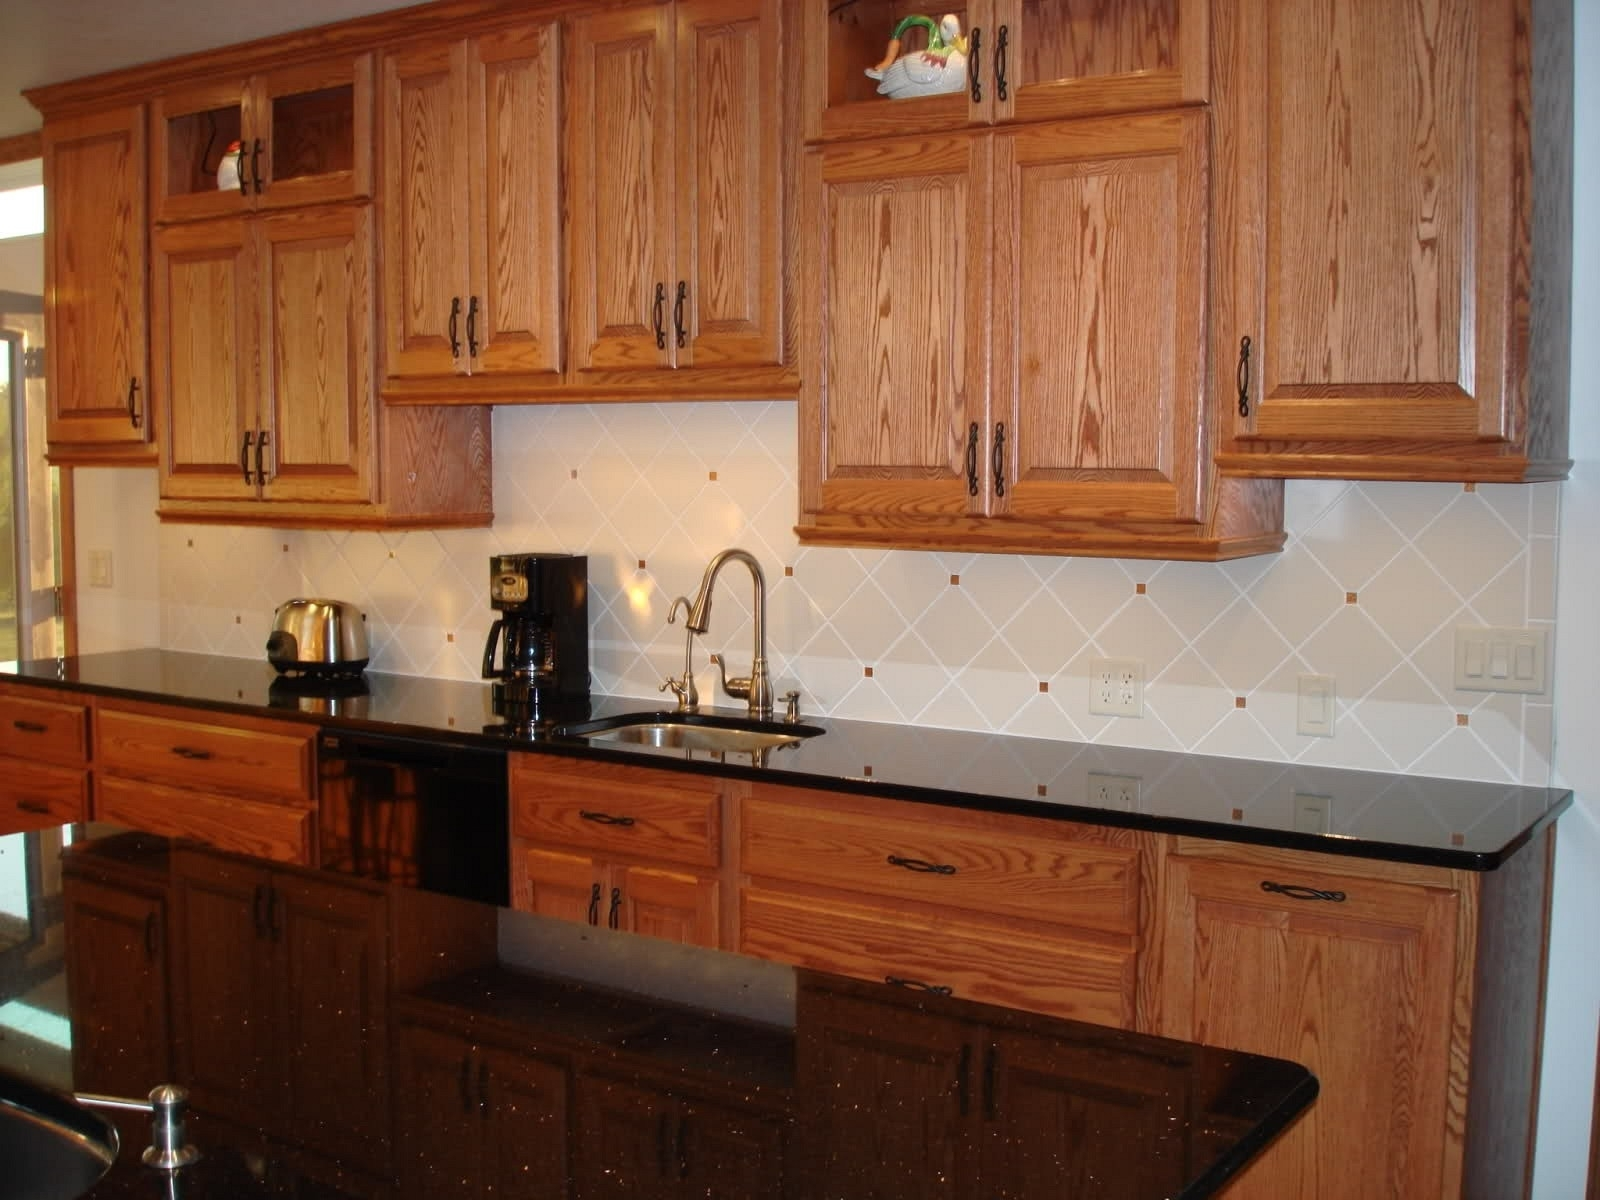 Honed Black Granite Countertops Pros And Cons - Madison ... on Dark Granite Countertops With Dark Cabinets  id=67075